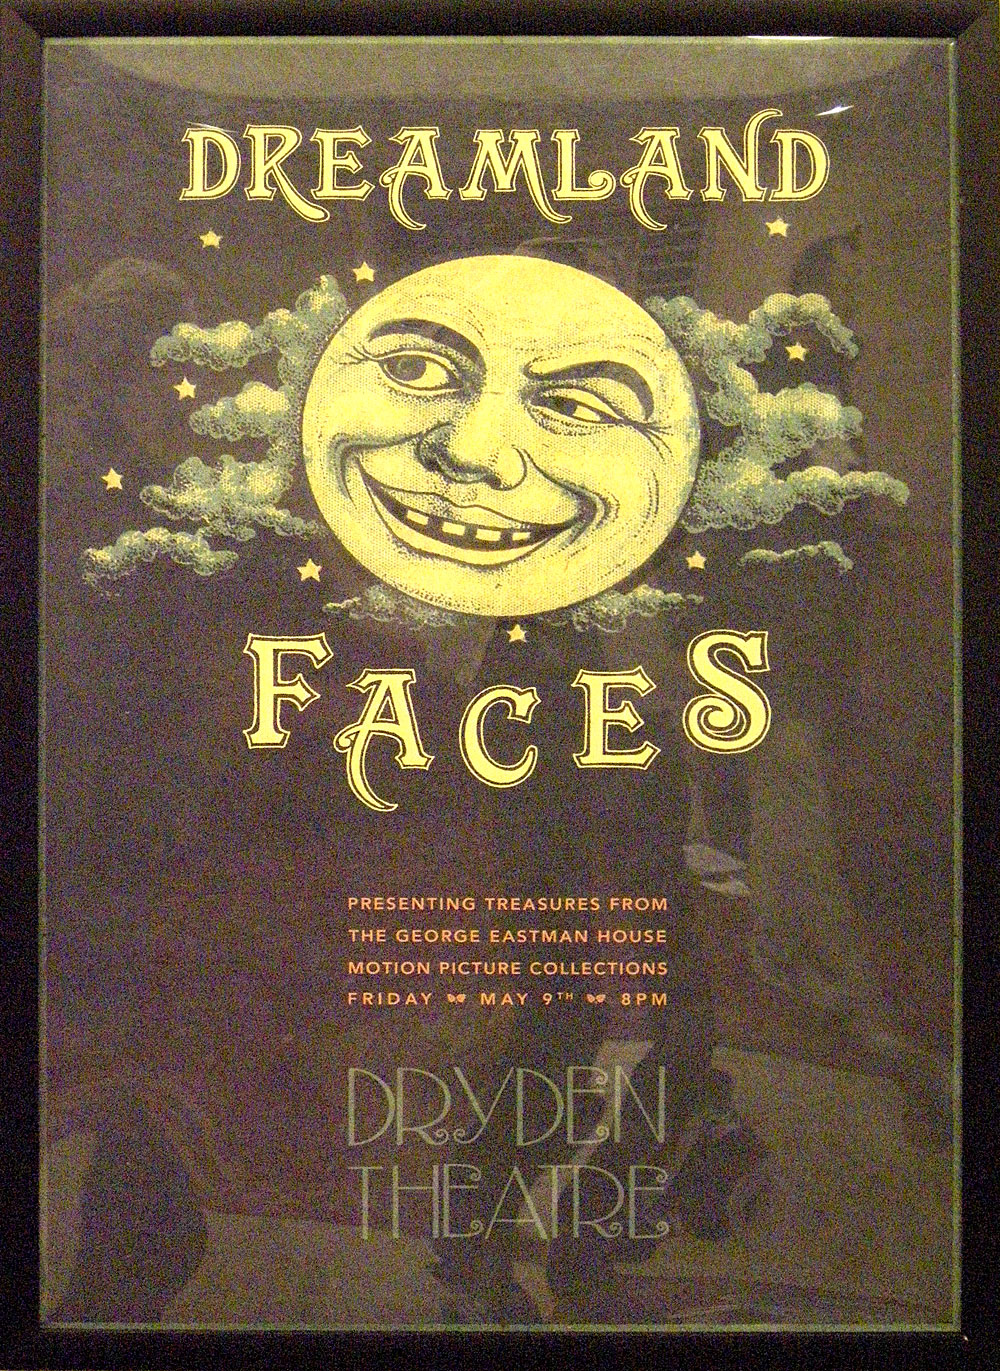 Dreamland Faces Poster for Dryden Theater at Geaorge Eastman House in Rochester, NY